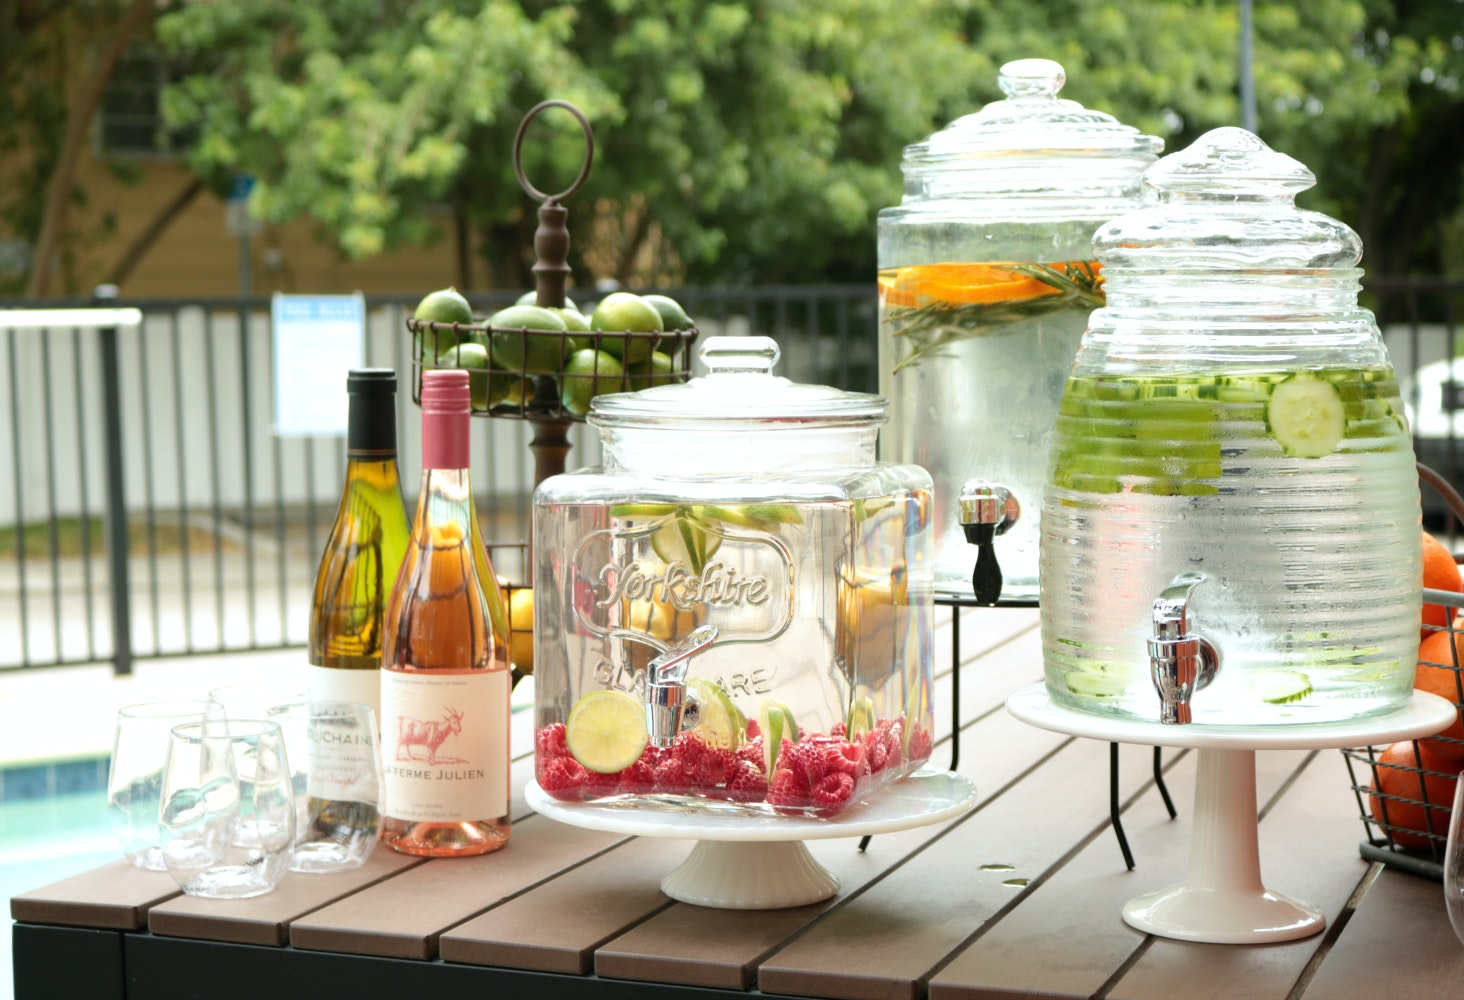 How To: Set Up a Beverage Station